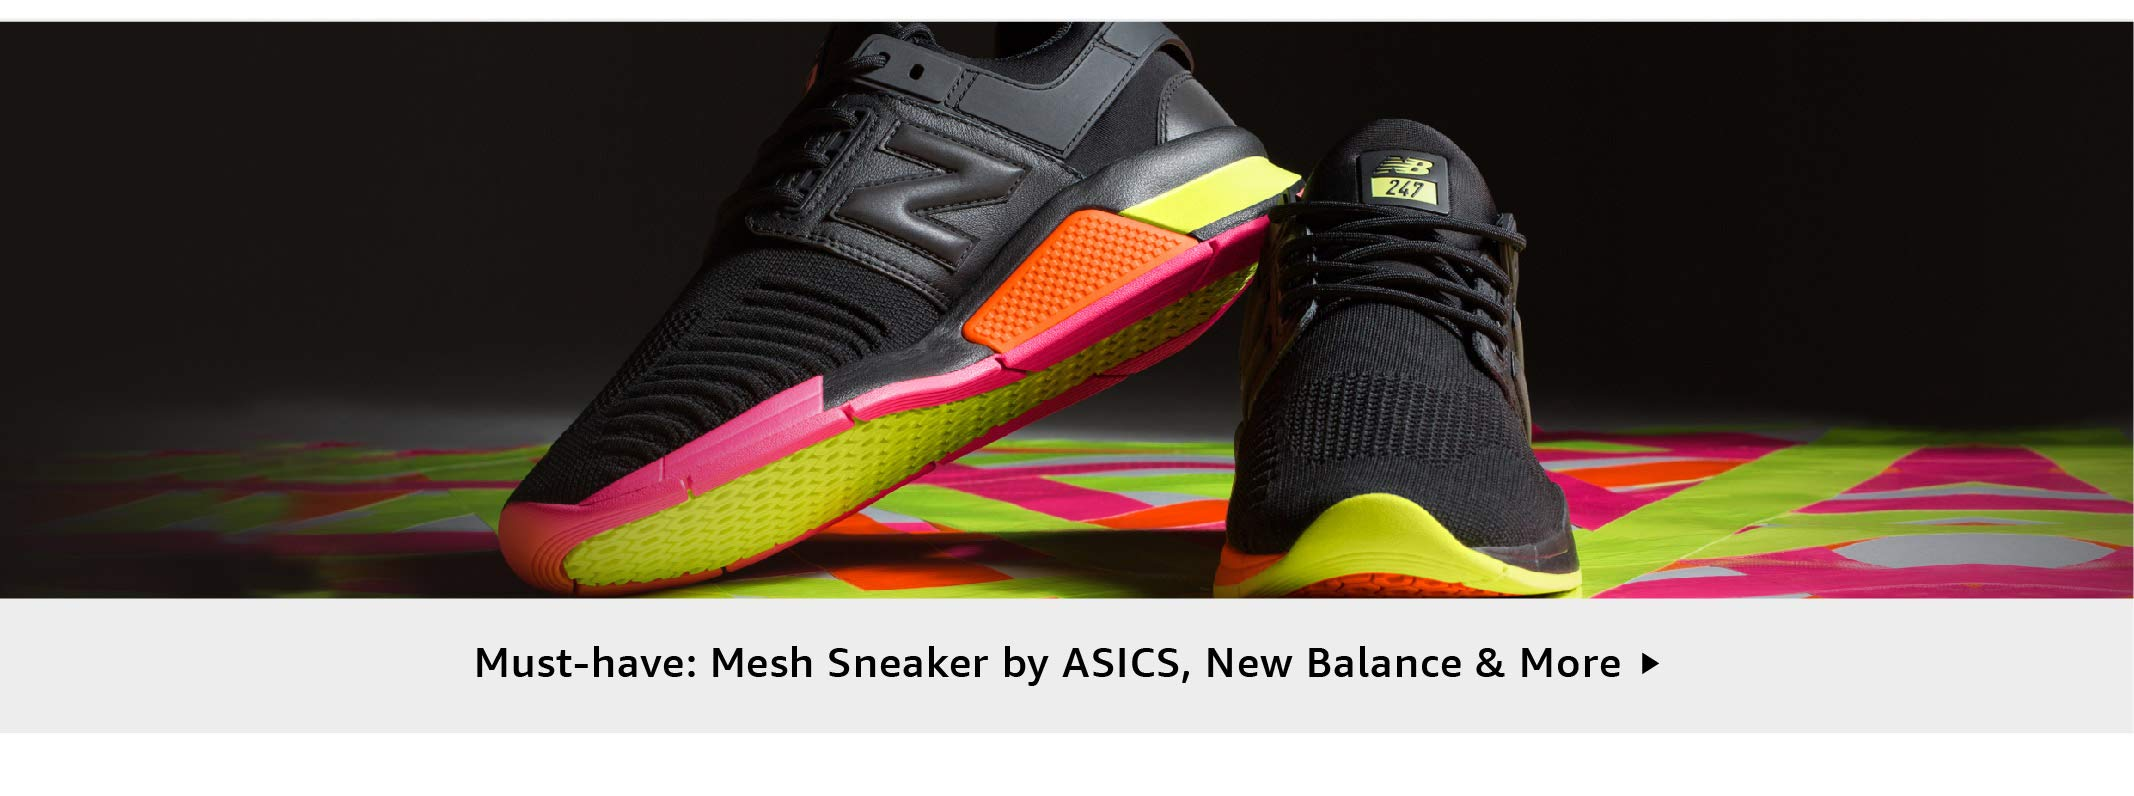 Must-have: Mesh Sneaker by ASICS, New Balance & More